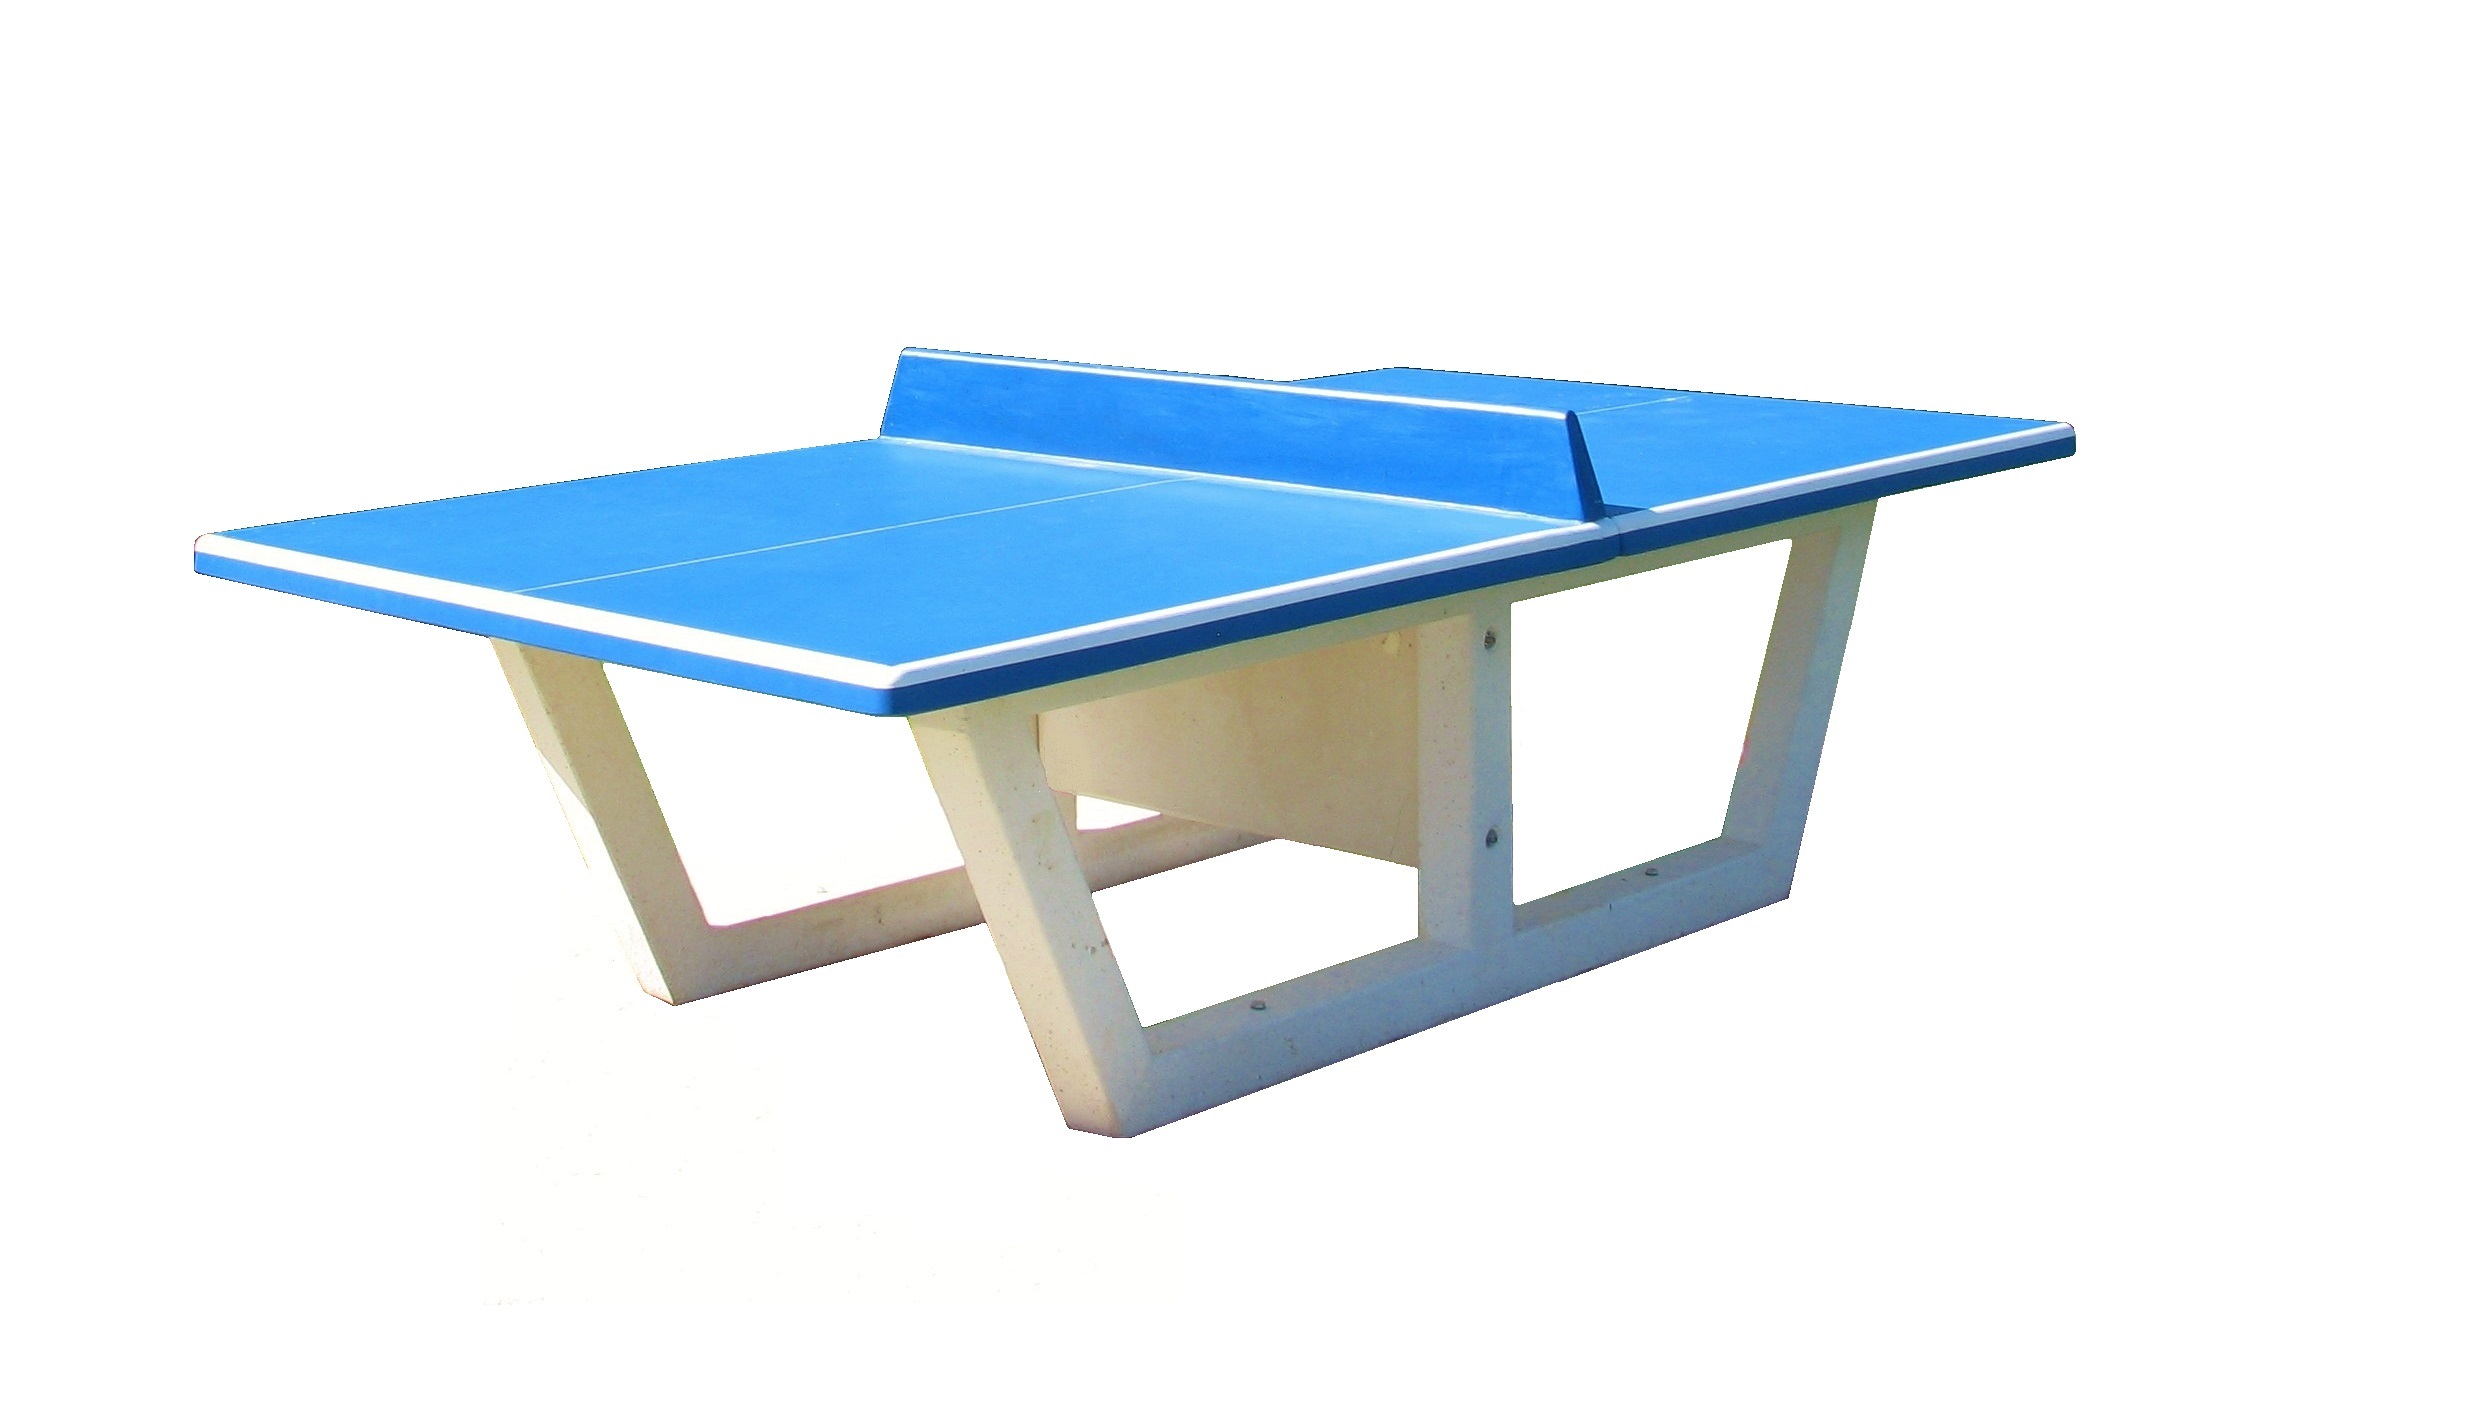 Table de ping pong en b ton emrodis - Table ping pong exterieur beton ...